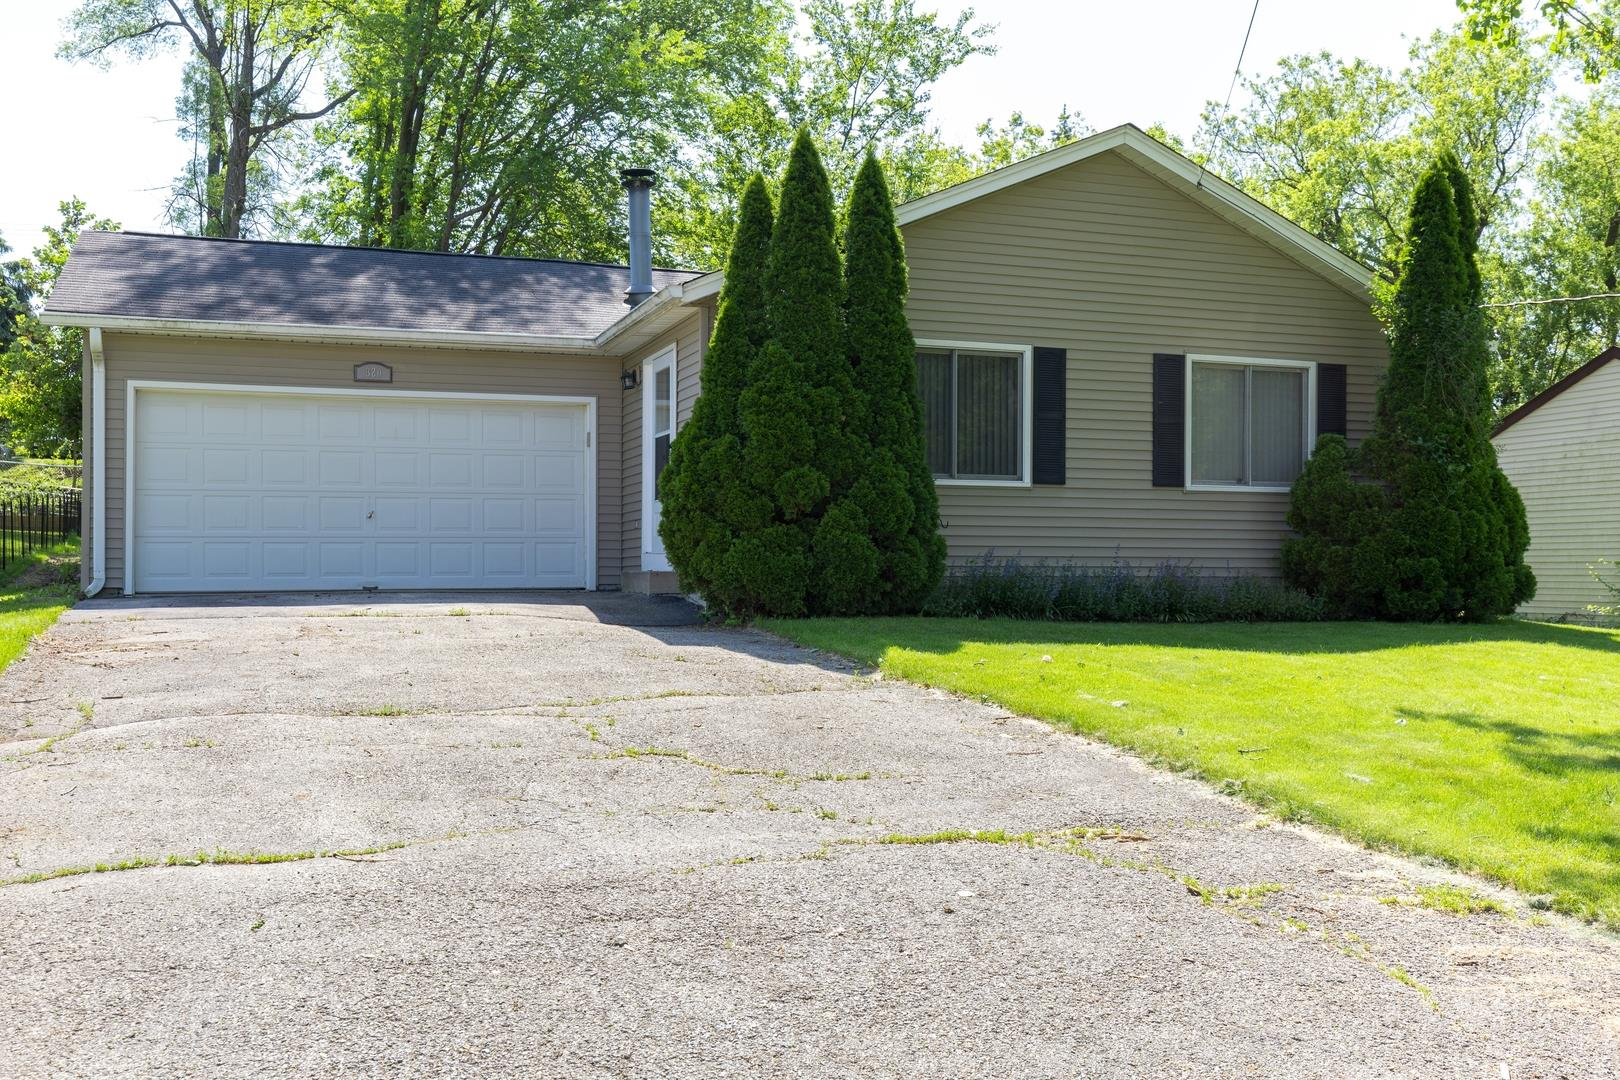 320 Council Trail, Lake in the Hills, IL 60156 - #: 10718997